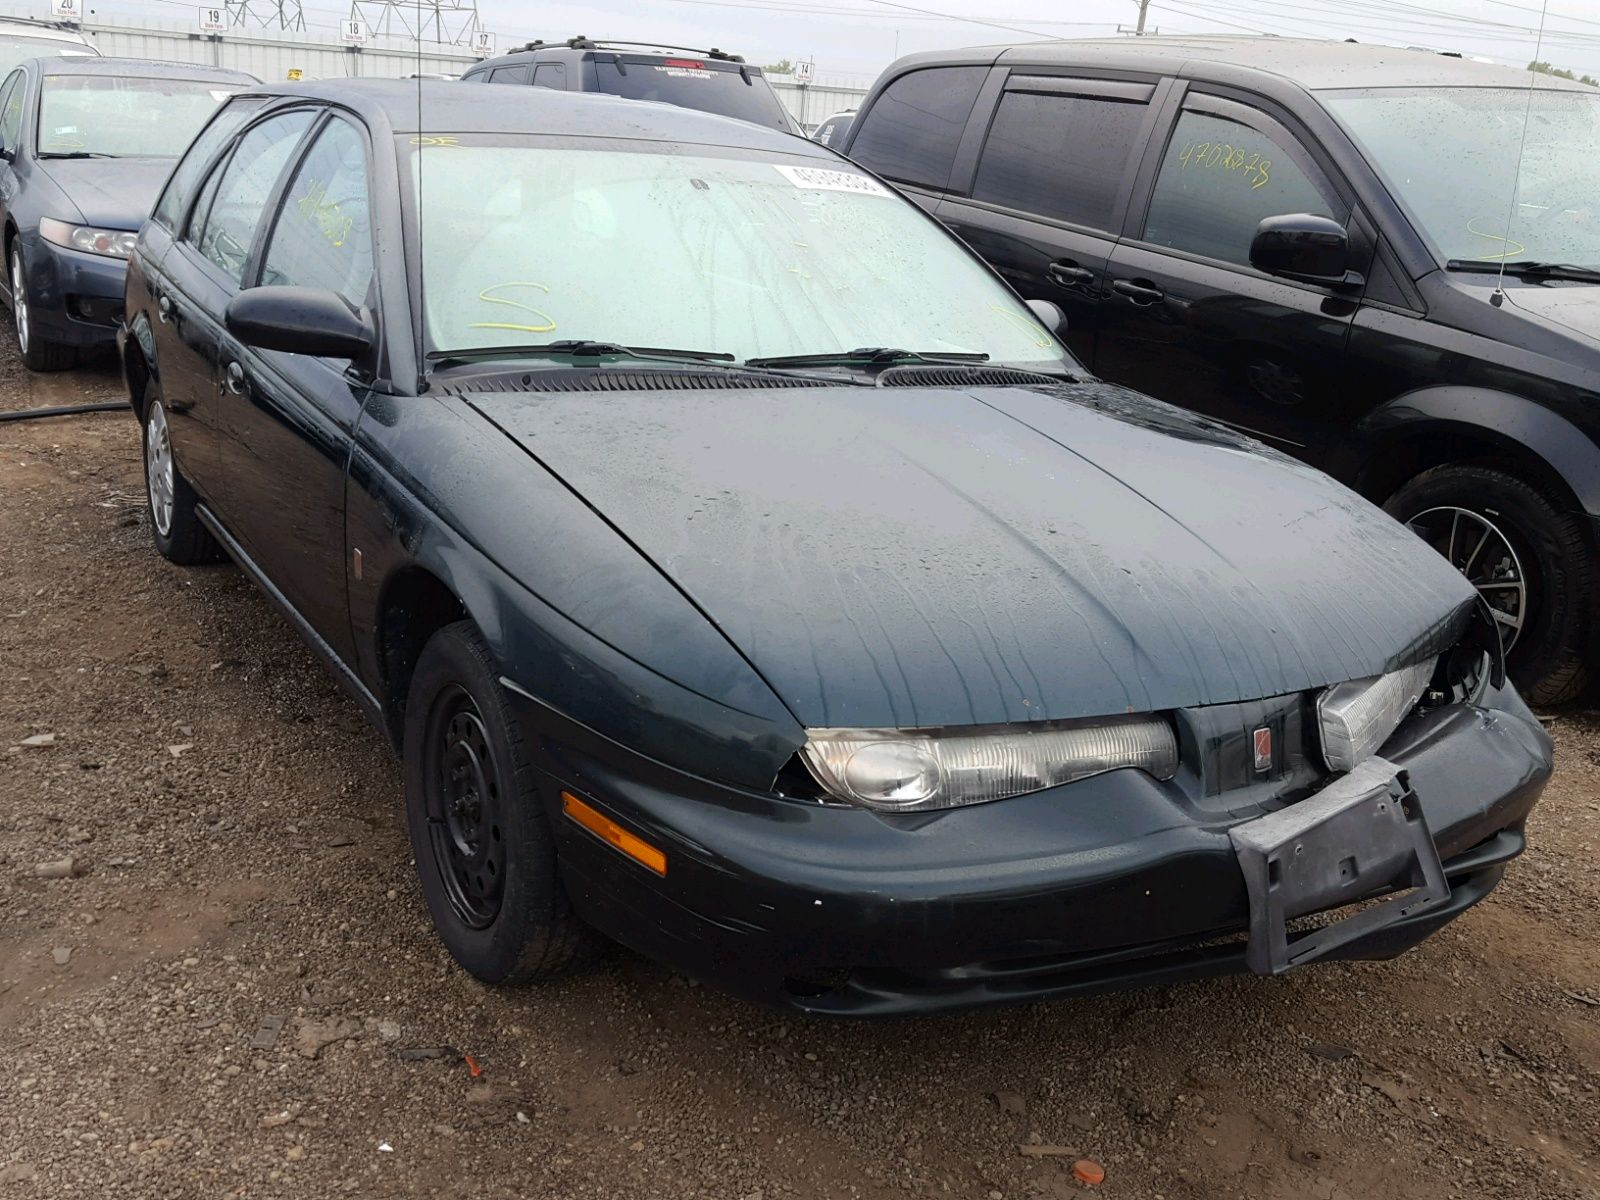 Damaged Cars For Sale Near Me Awesome Damaged Saturn S Series Car For Sale And Auction Damaged Cars For Sale Cars For Sale Damaged Cars